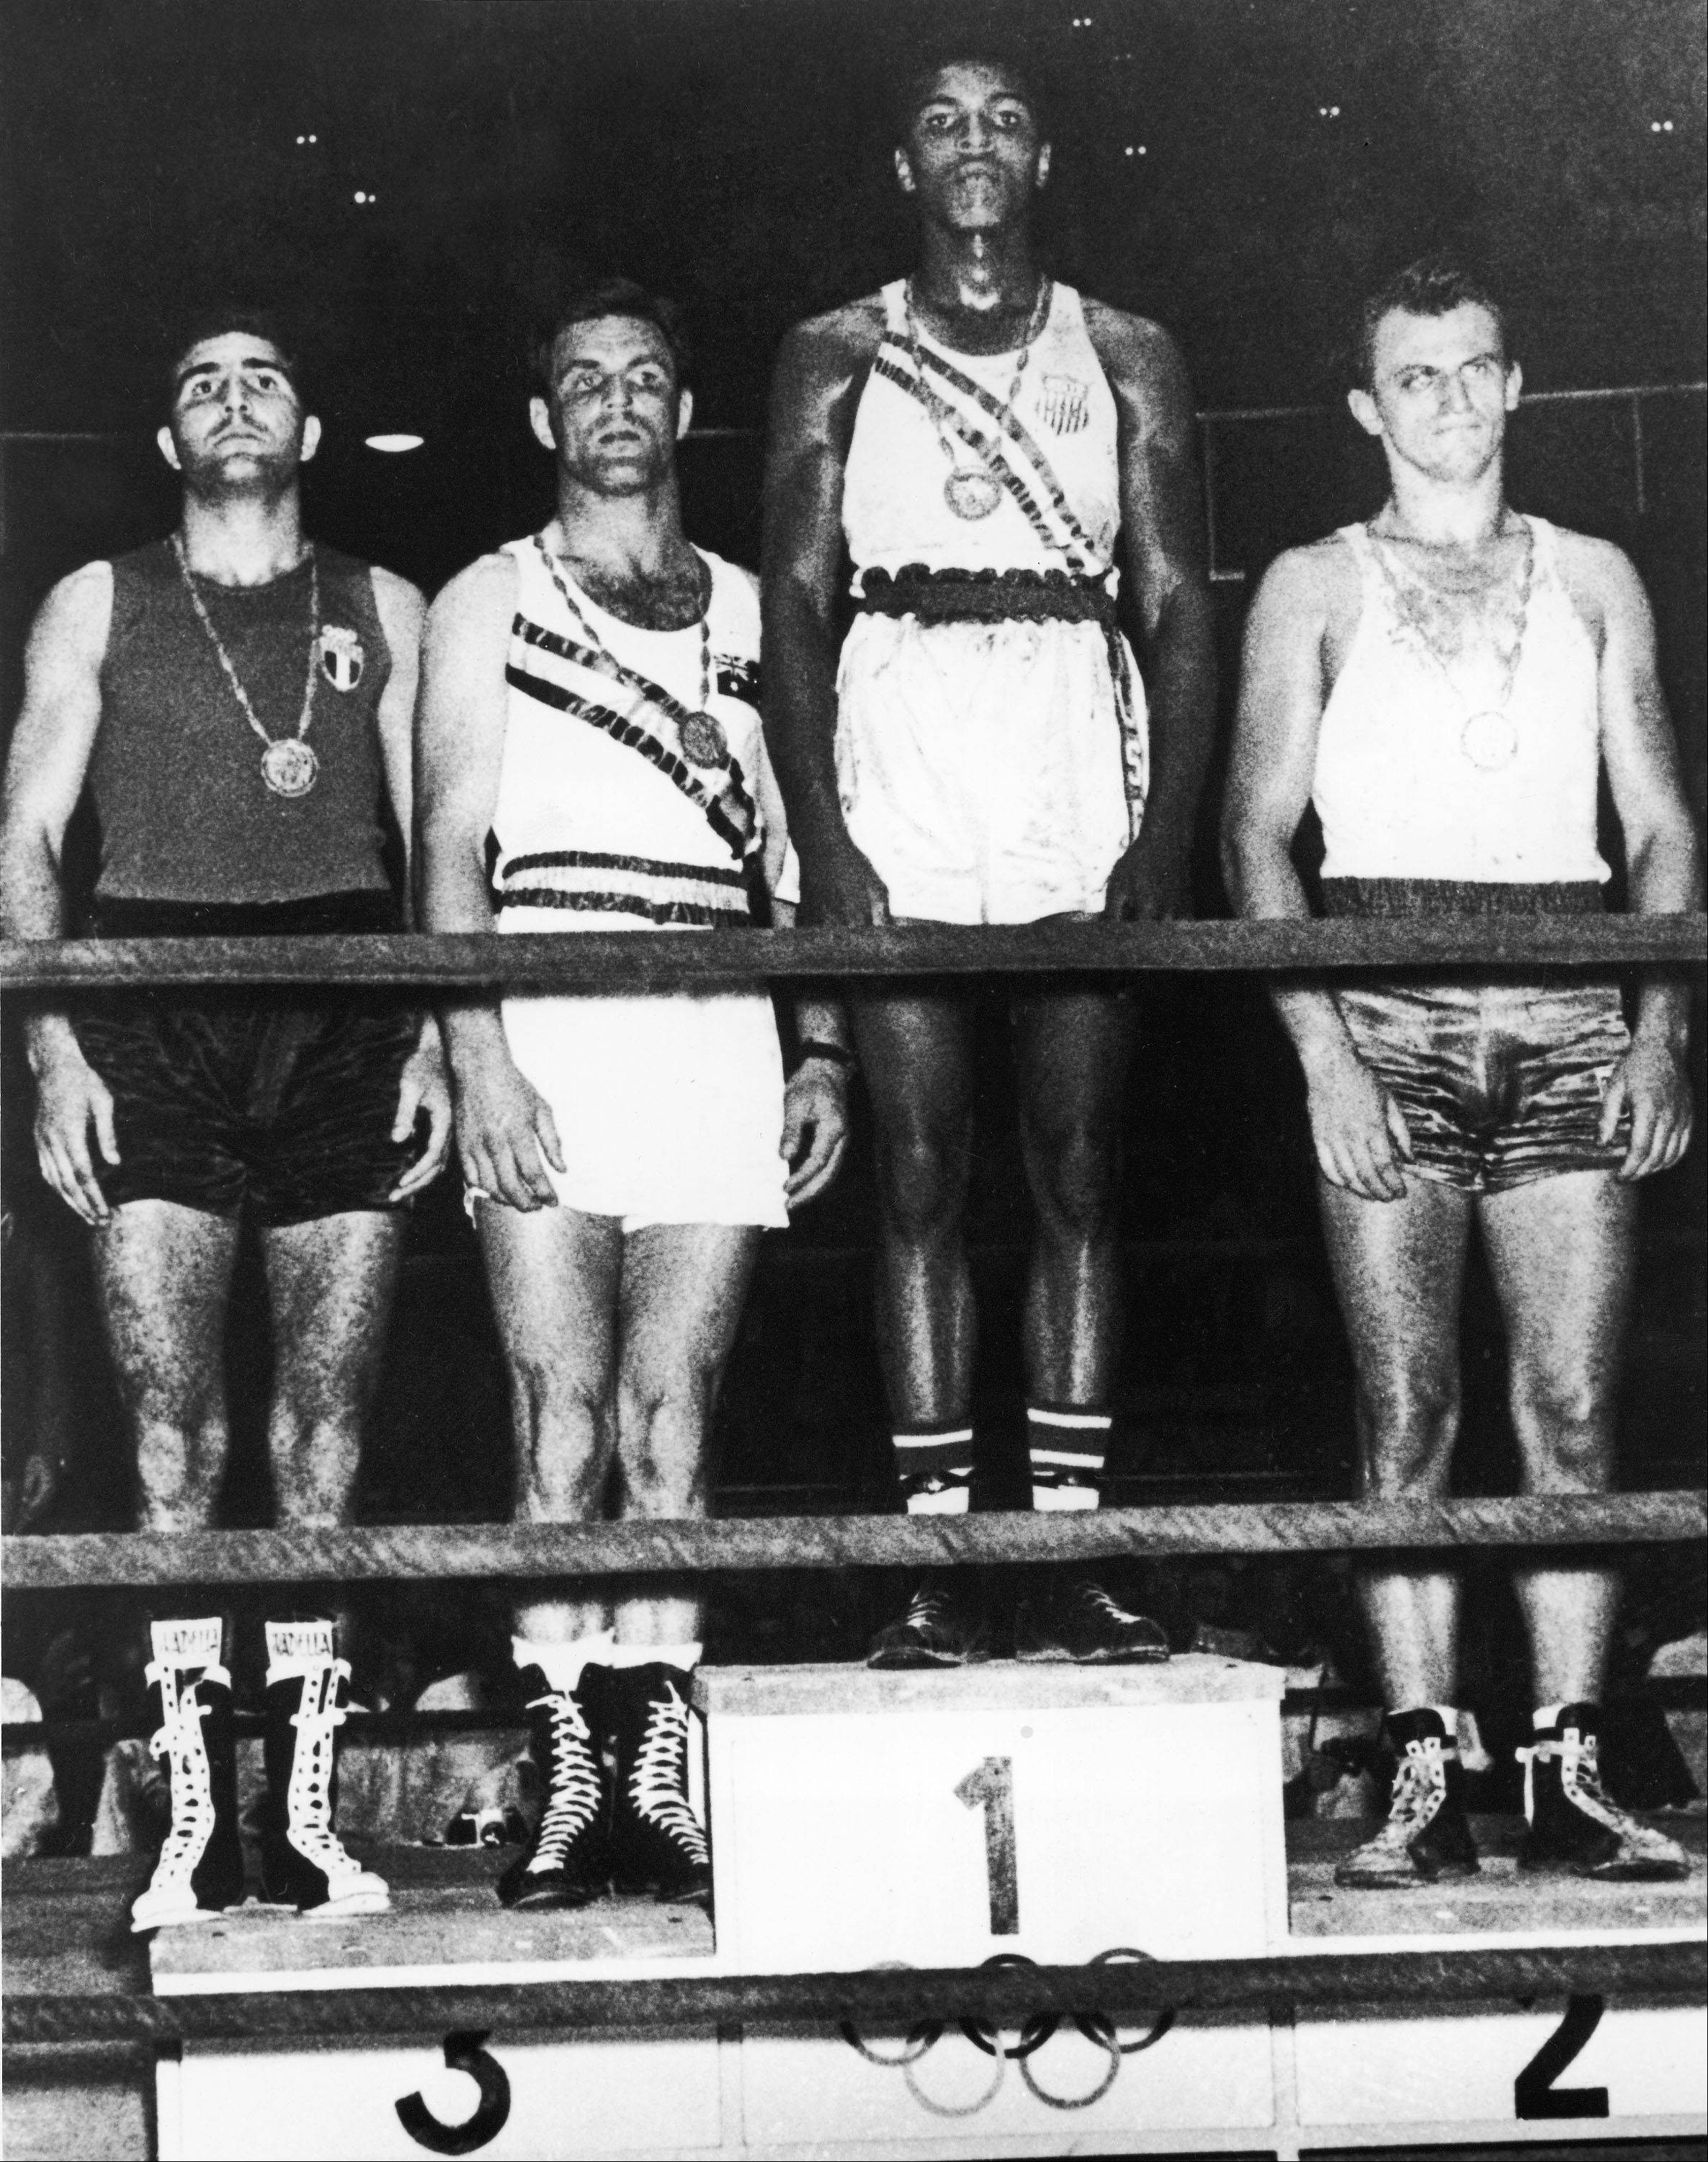 The winners of the light heavyweight boxing division pose during the medal ceremony at the Summer Olympic Games in Rome, Italy, Sept. 14, 1960. Gold medal winner is then 18 year-old Cassius Clay, and silver medal winner is Z Pietrzykowski of Poland, right; and the bronze medal winners are Tony Madigan of Australia and Giulio Saraudi of Italy, far left.